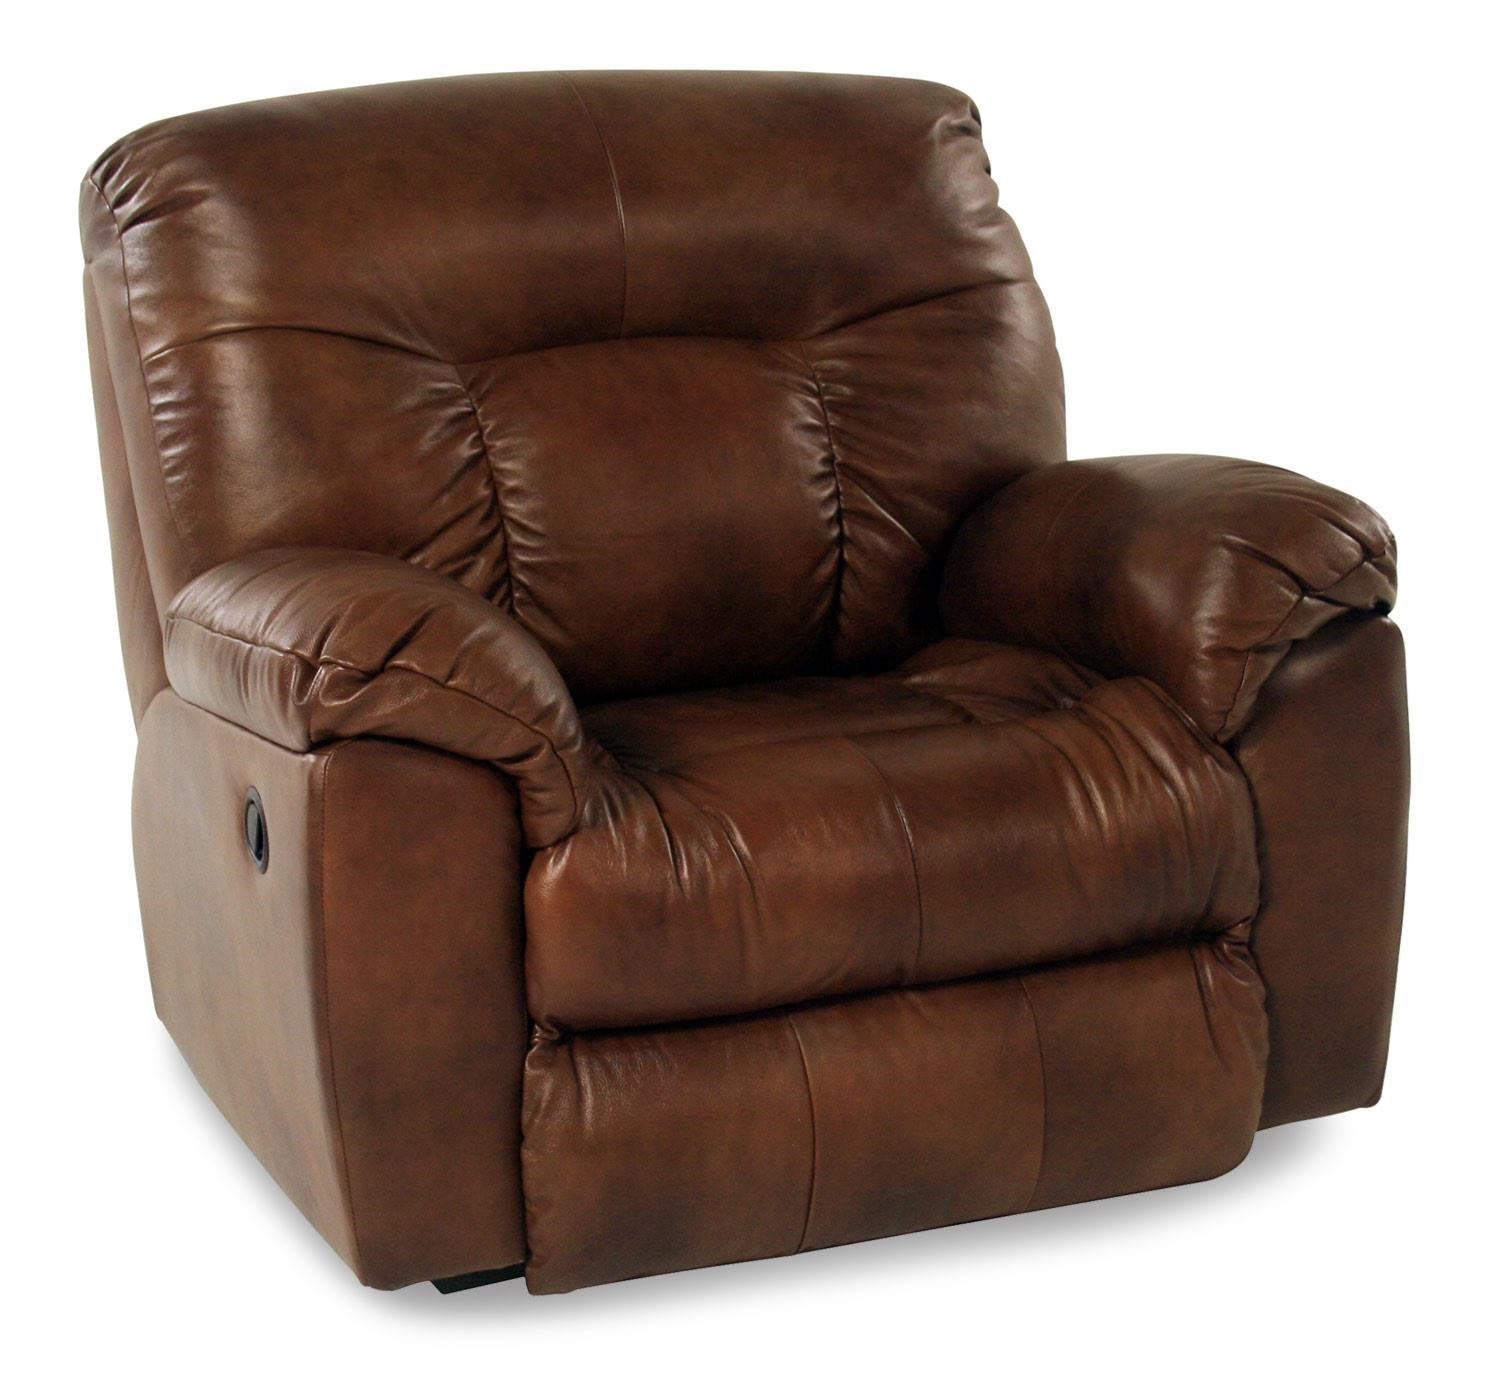 Design To Recline Mariposa Oversized Leather Power Recliner